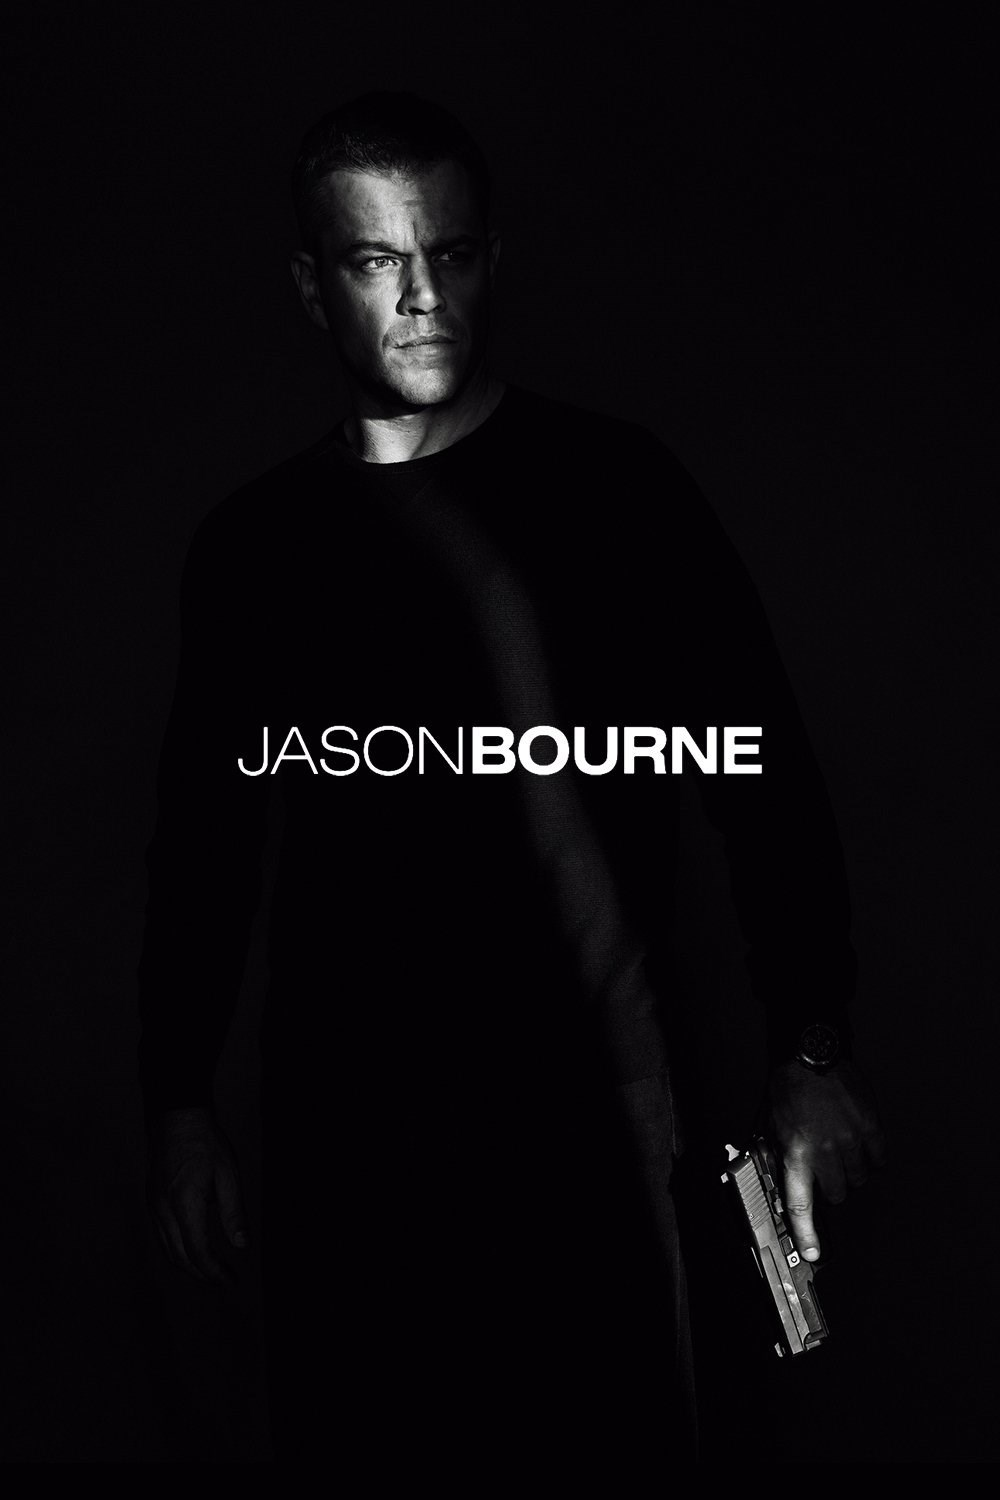 jason-bourne.45604.jpg